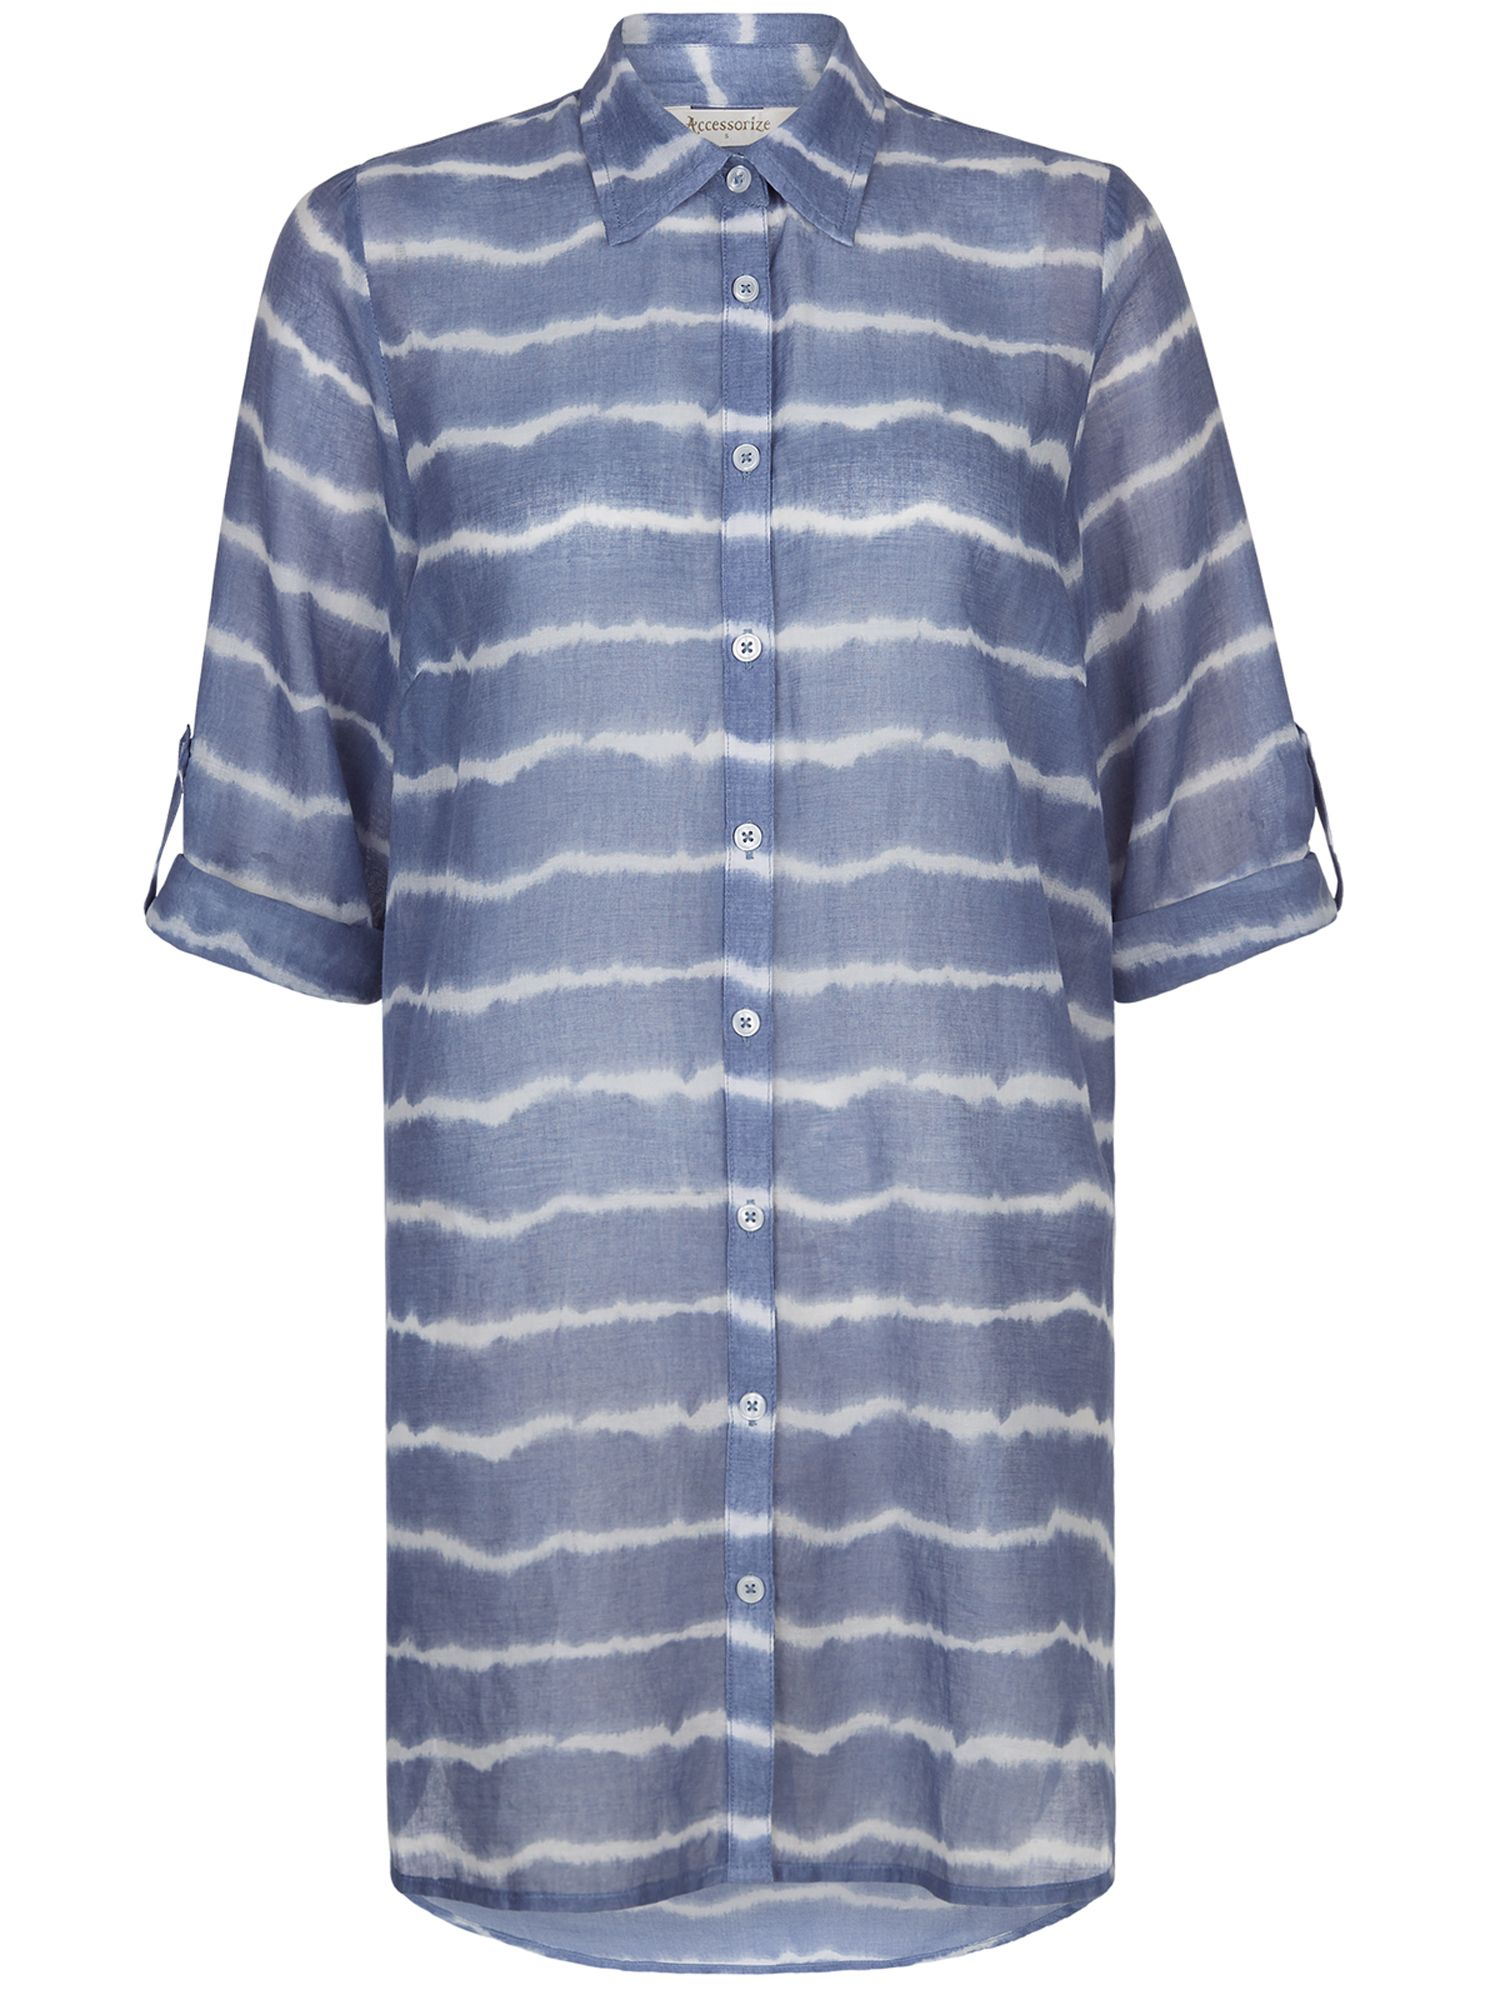 Accessorize Tie Dye Beach Shirt, Blue